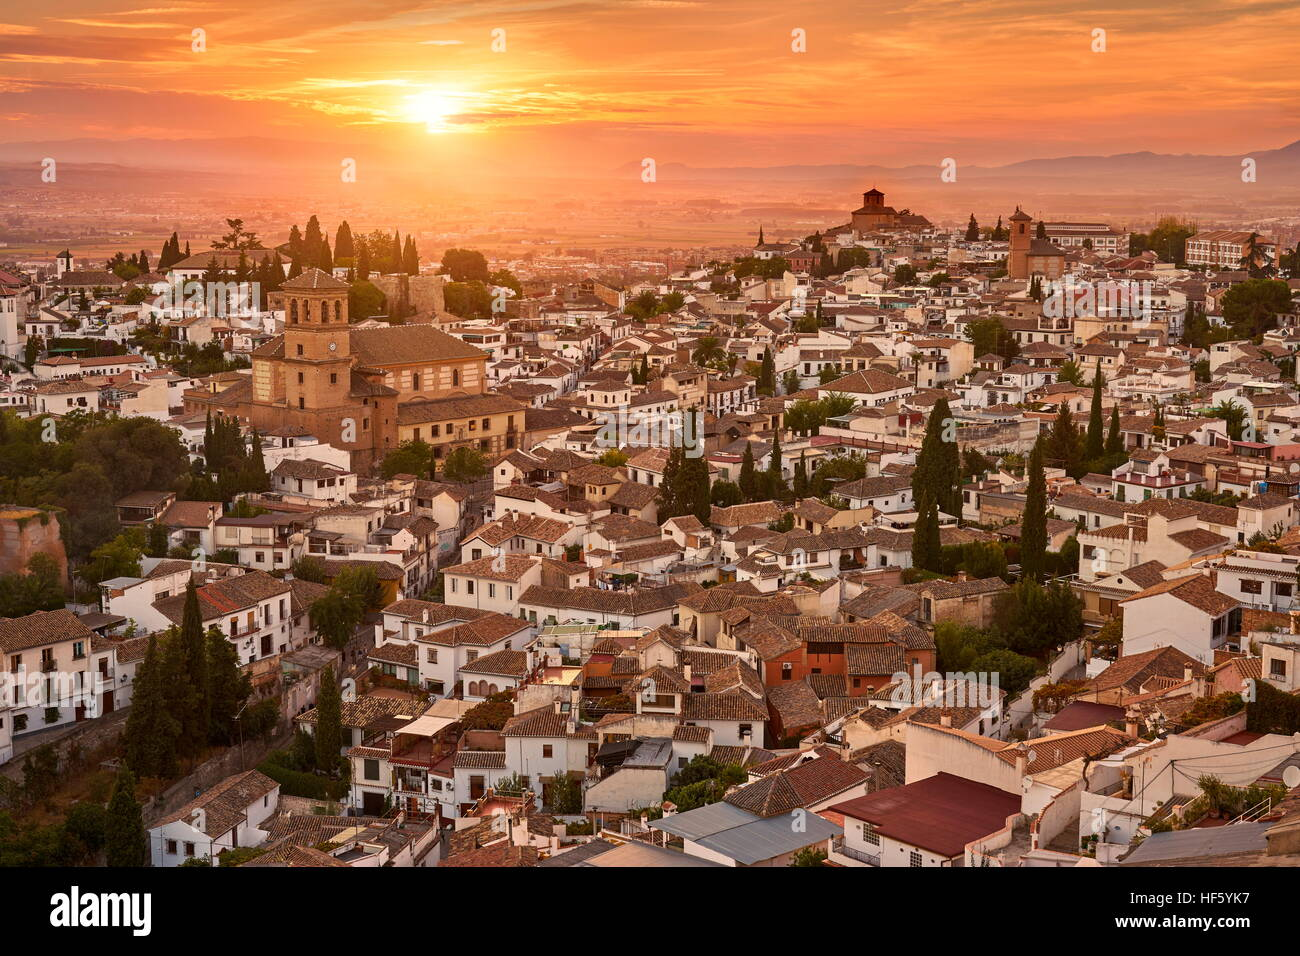 Sunset cityscape of Granada, Andalucia, Spain - Stock Image